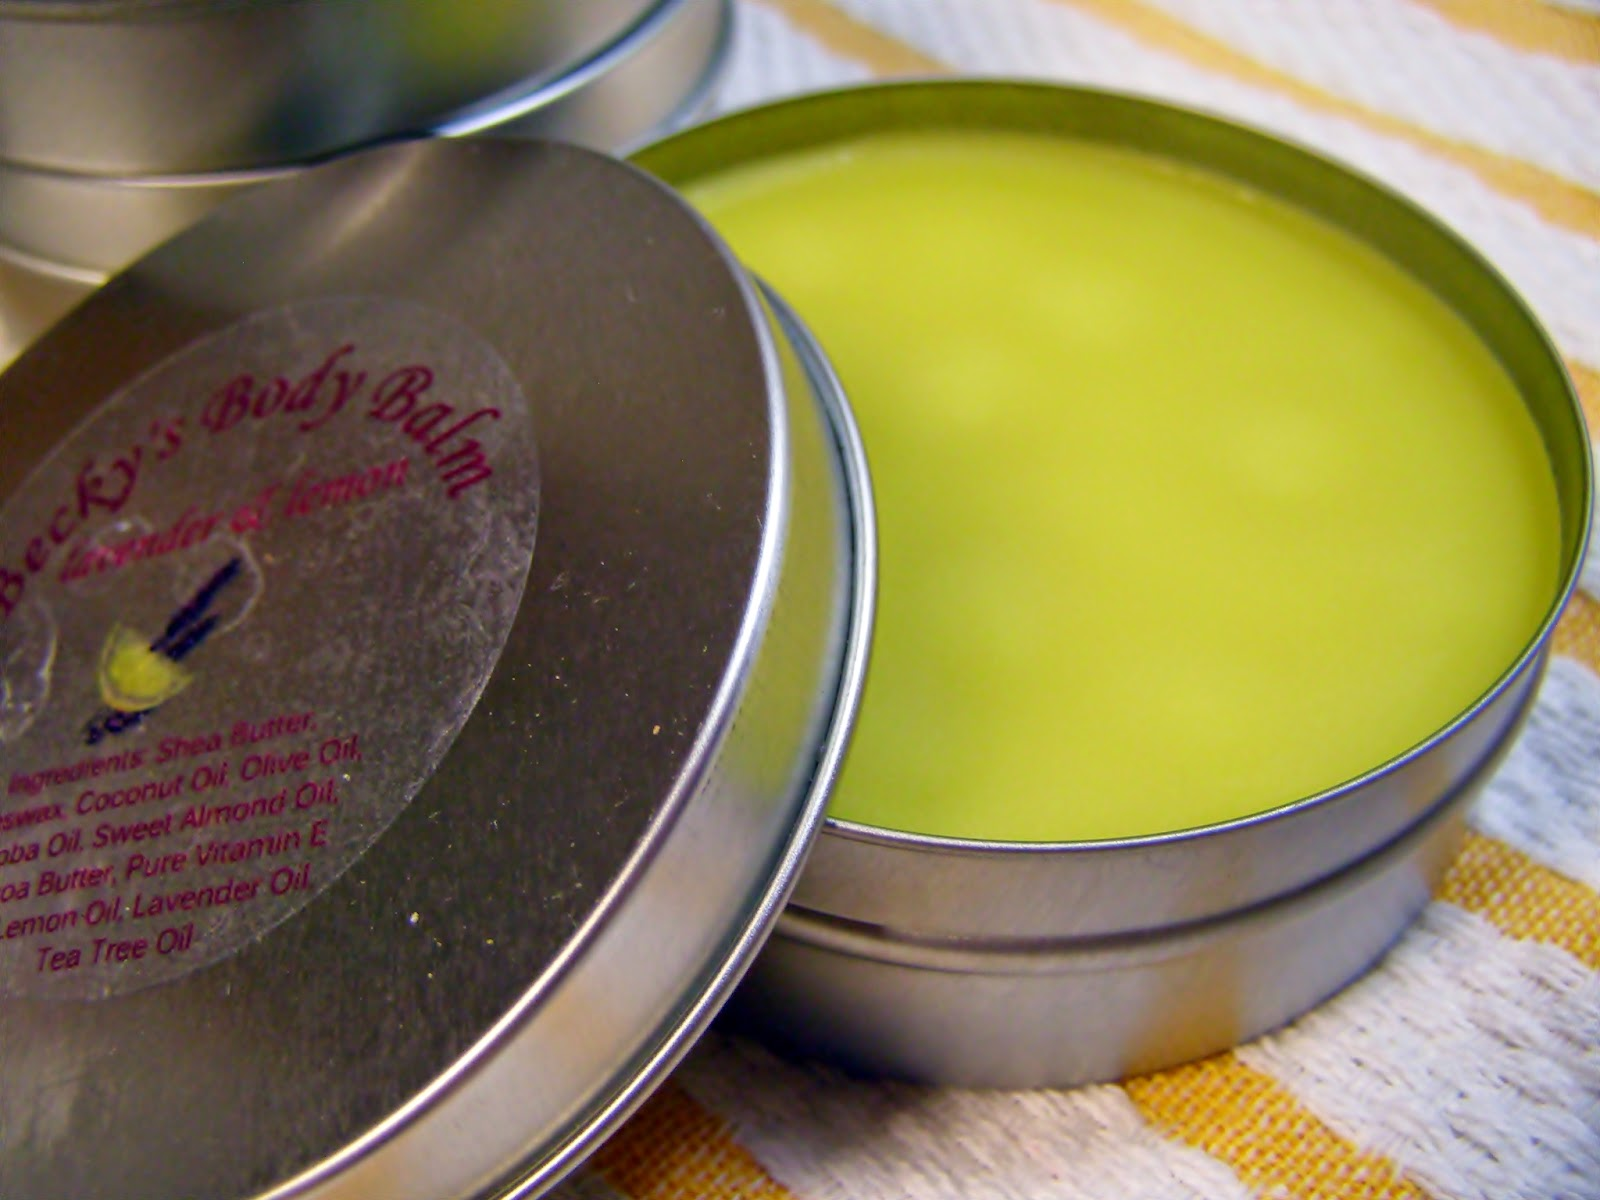 Lemon & Lavender essential oils in Body Balm